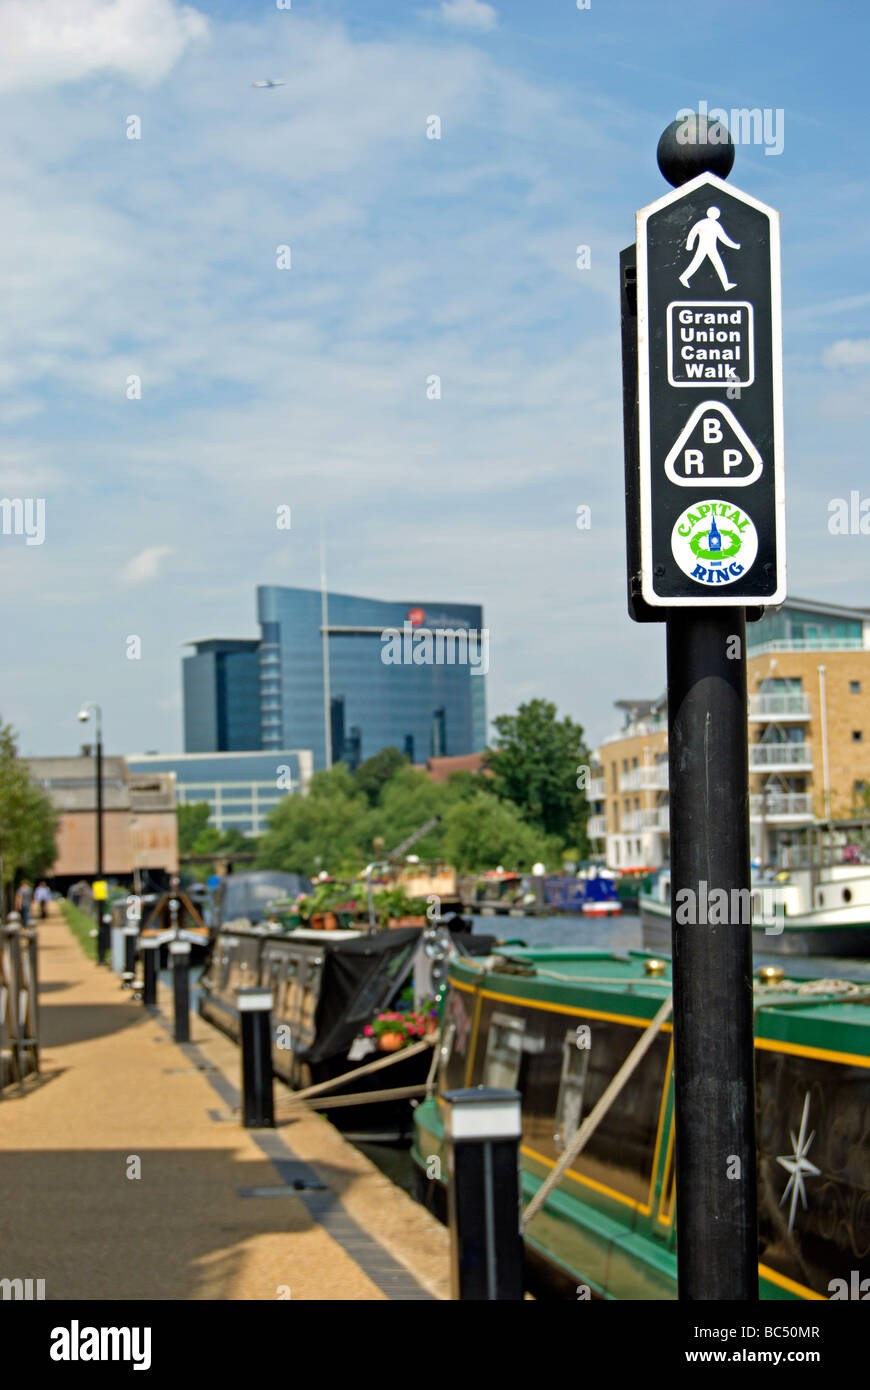 signpost showing routes for grand union canal walk, capital ring, and brent river park footpath, brentford, london, - Stock Image